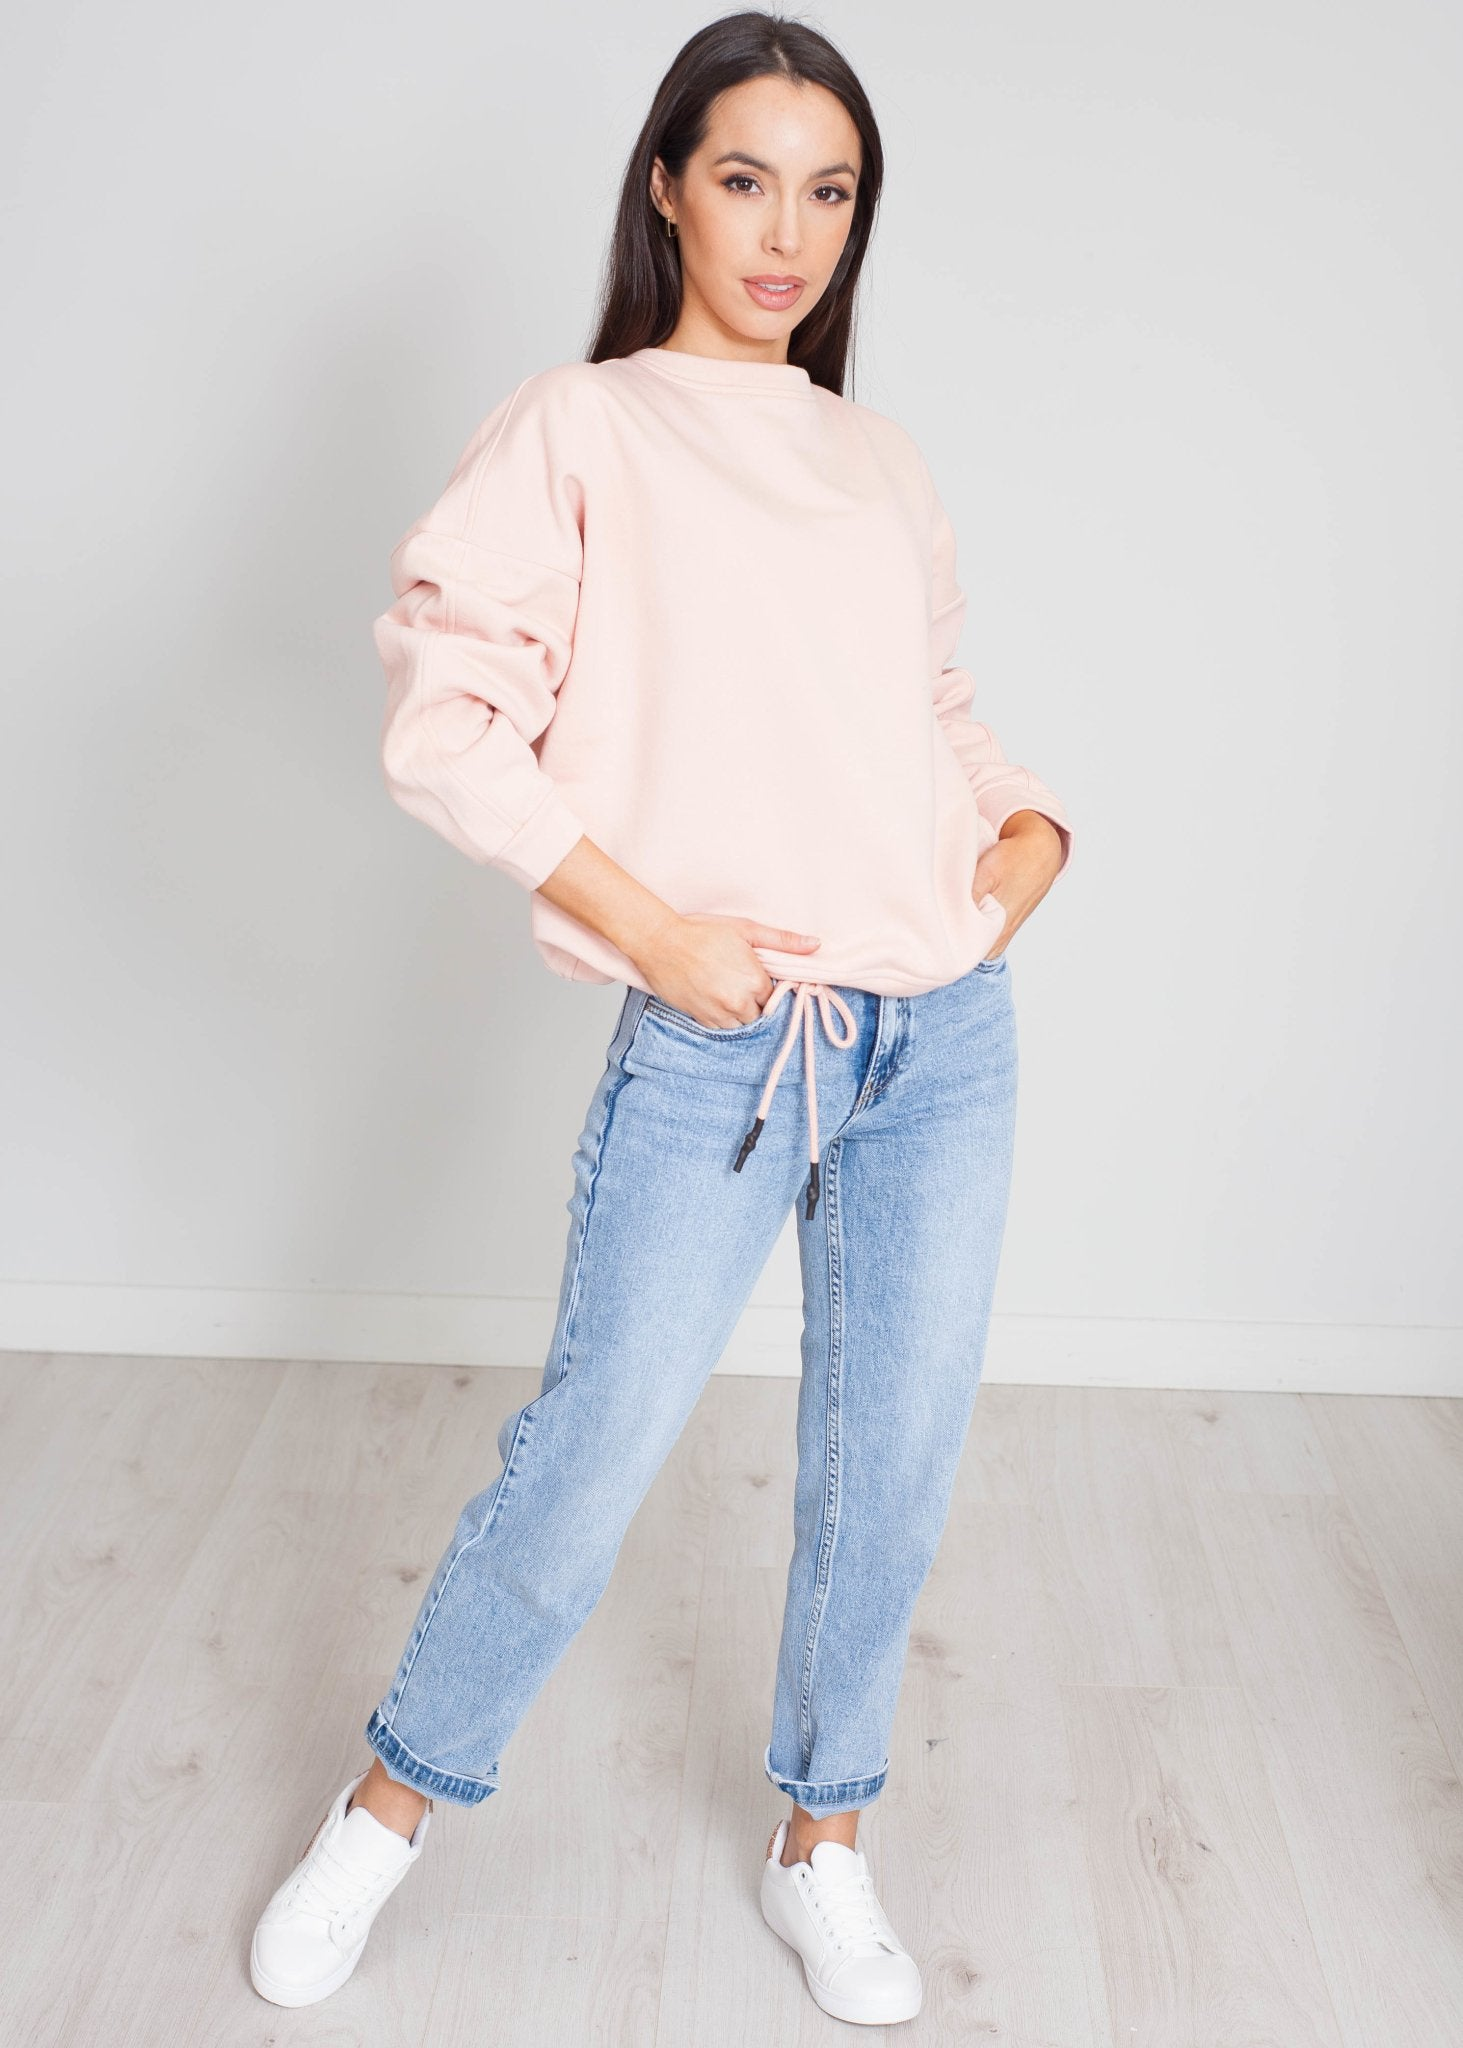 Danni Drawstring Sweatshirt In Blush - The Walk in Wardrobe